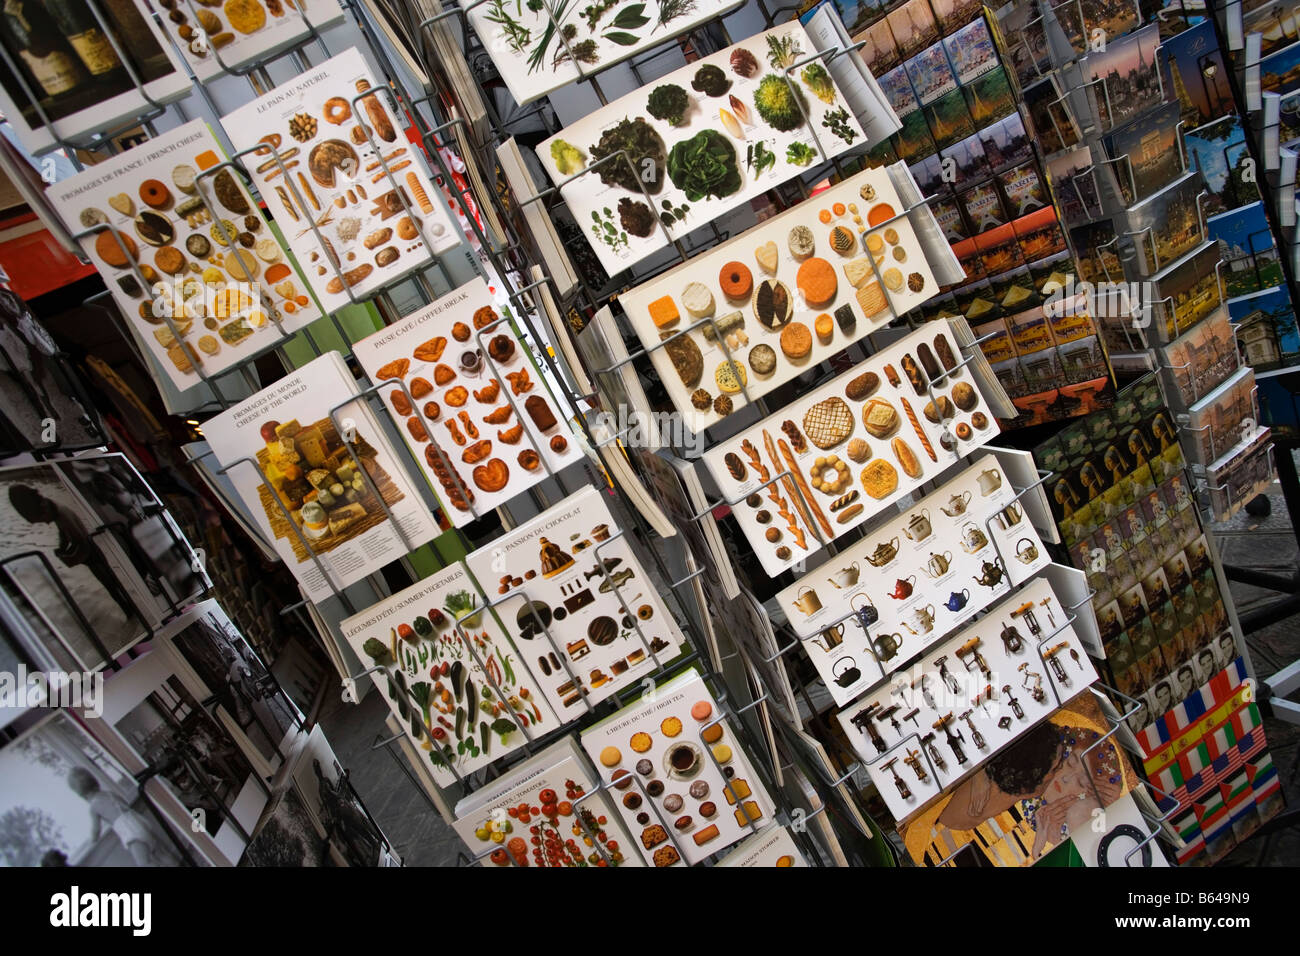 France, Paris, Postcards showing French food - Stock Image